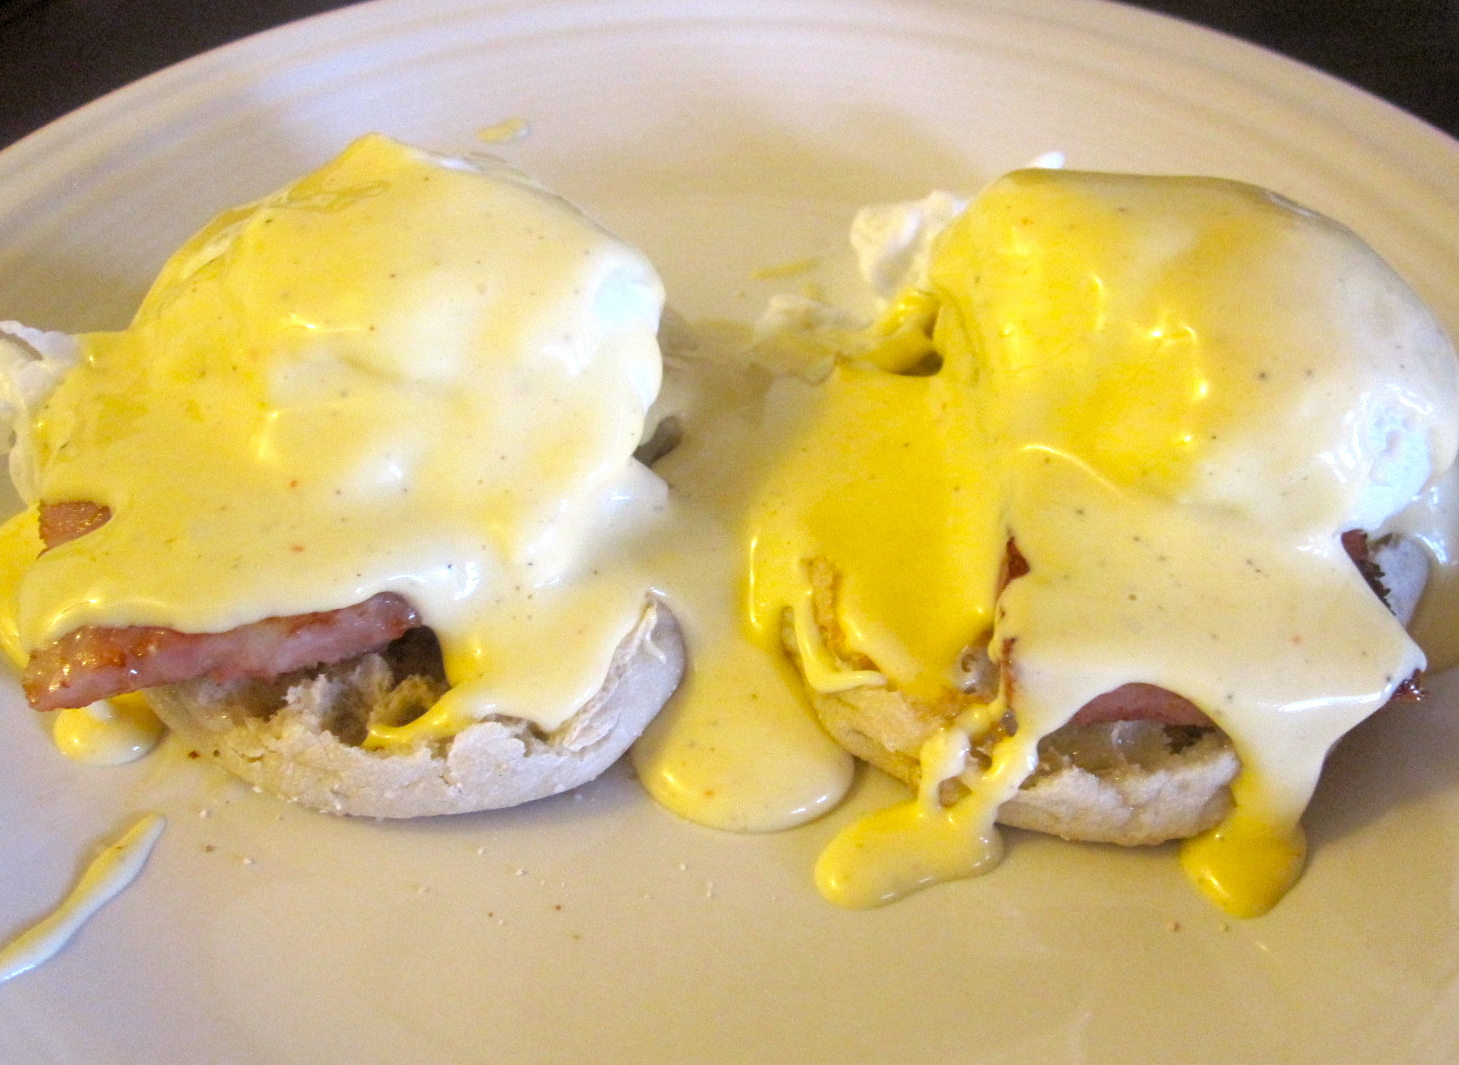 The Cultural Dish: Eggs Benedict with Mimosa's